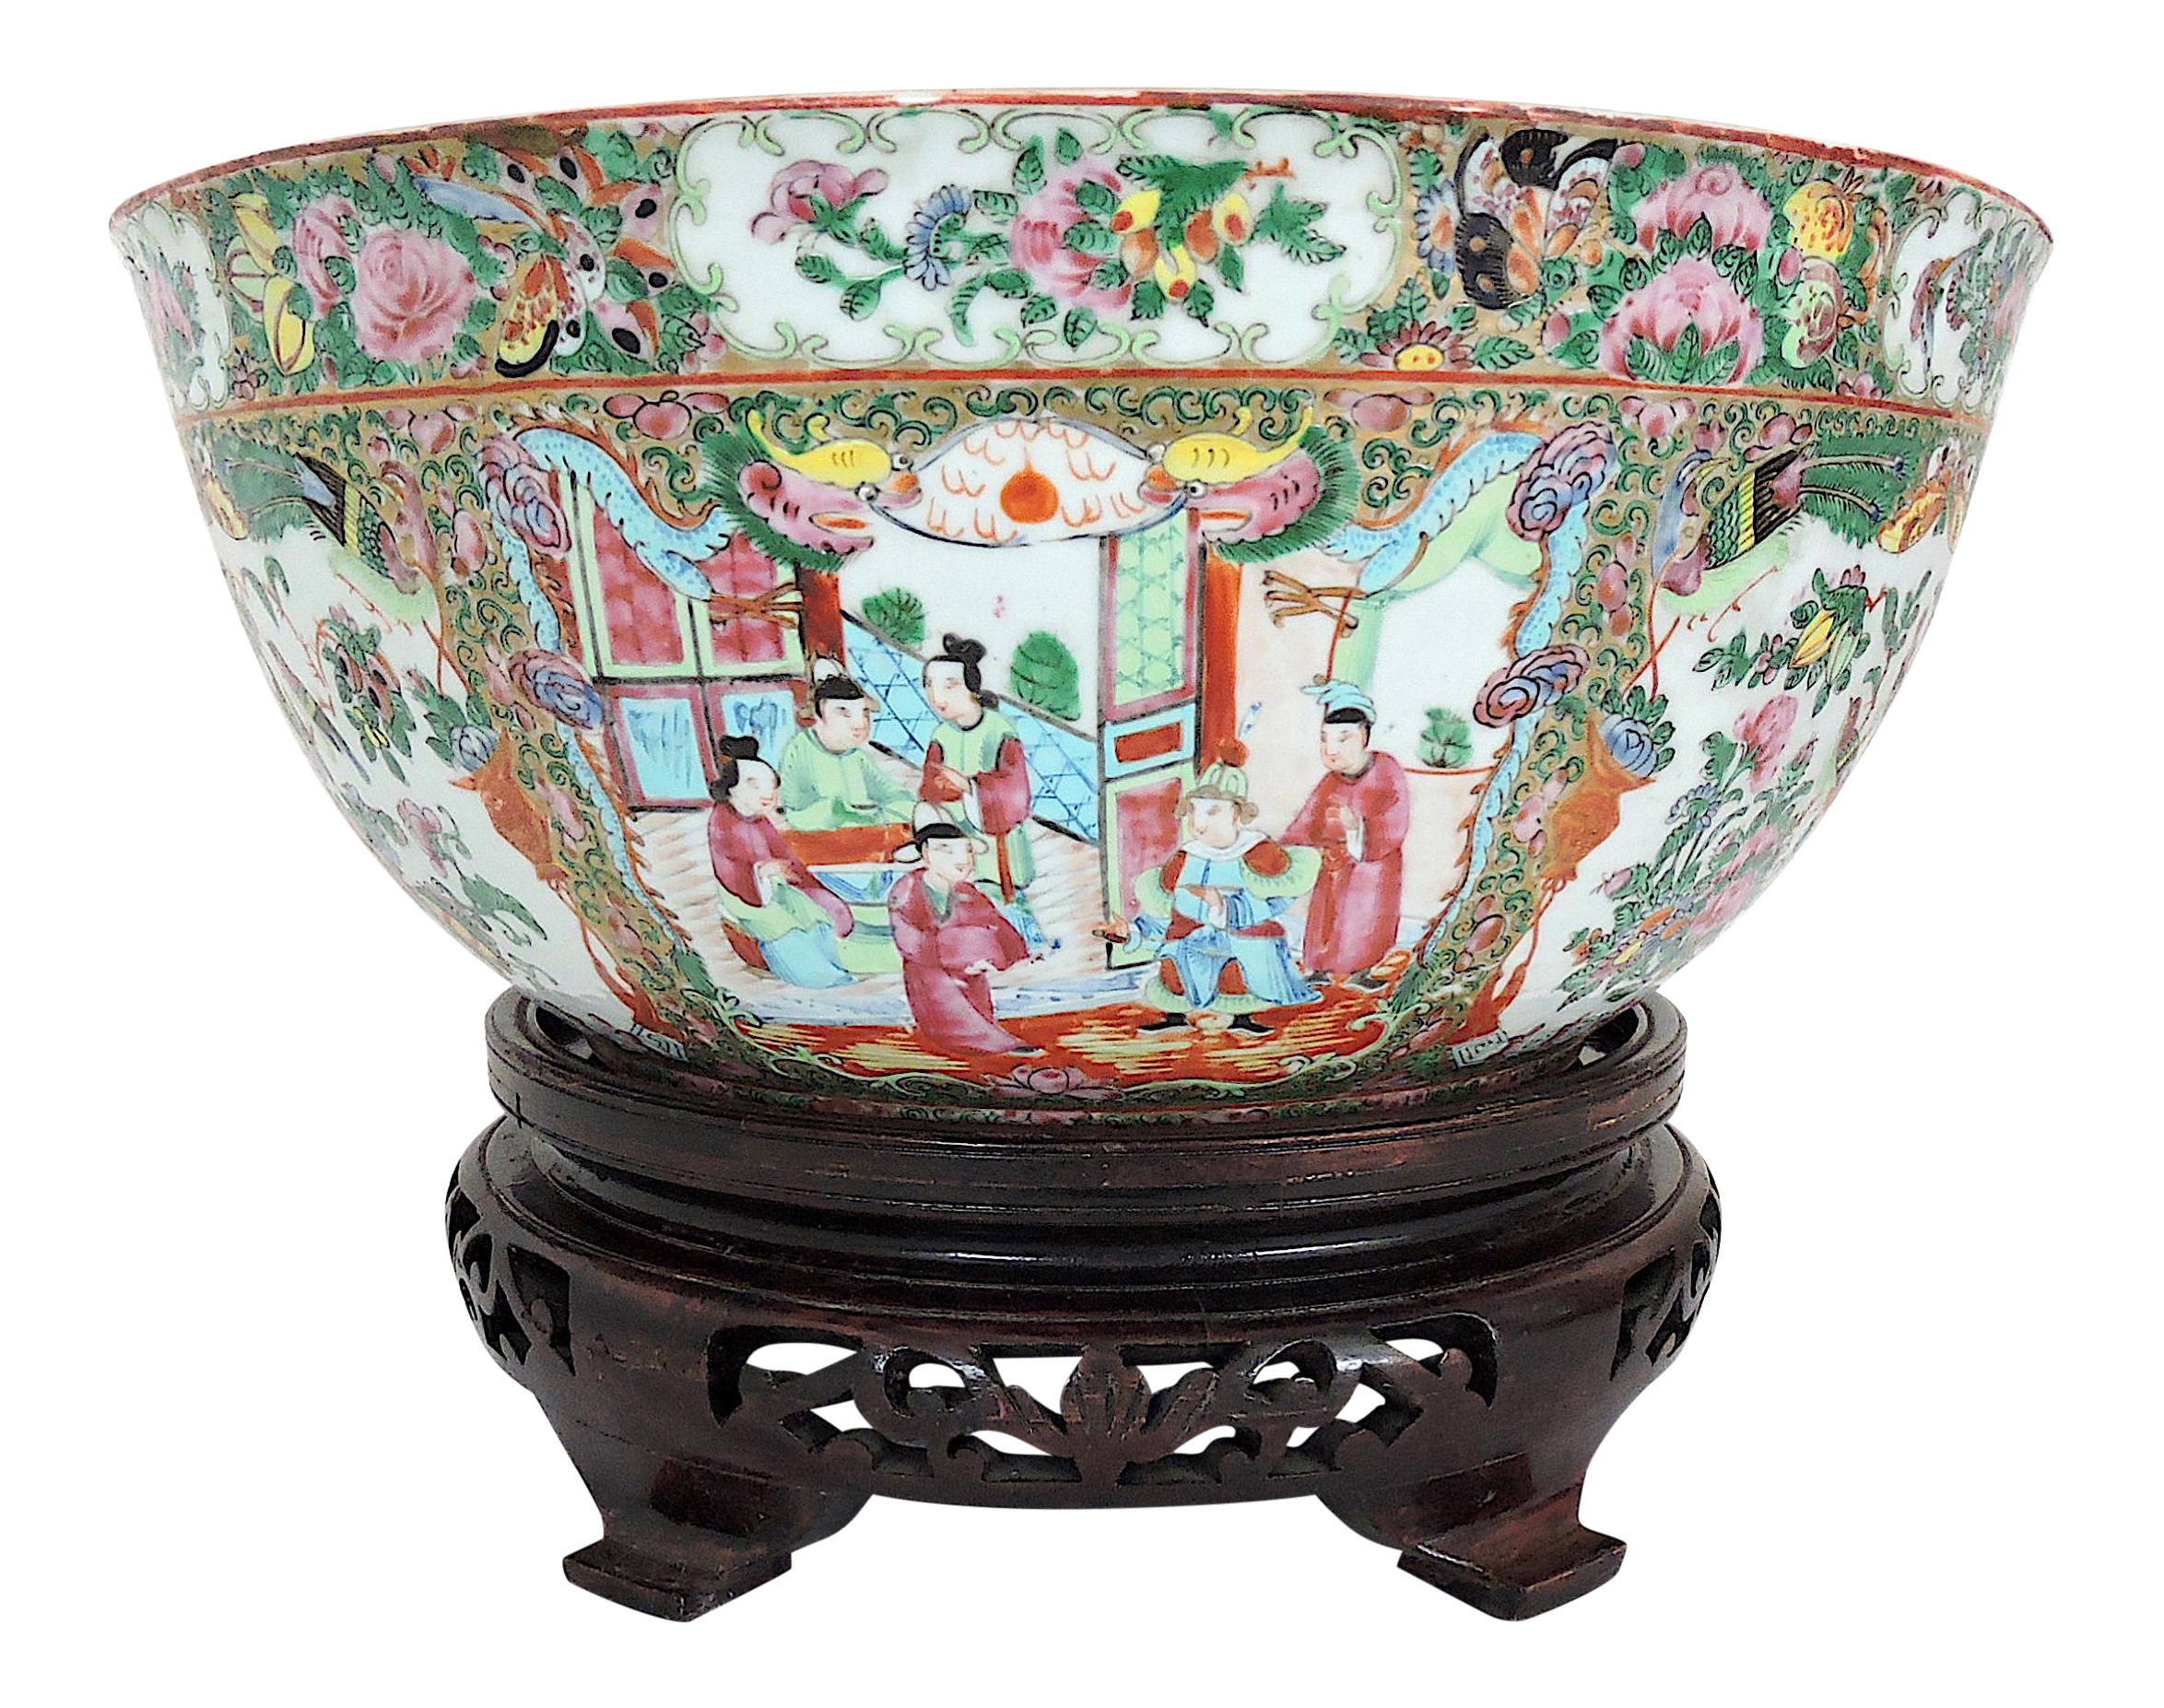 Antique Chinese Canton export porcelain famille rose medallion vase late Qing